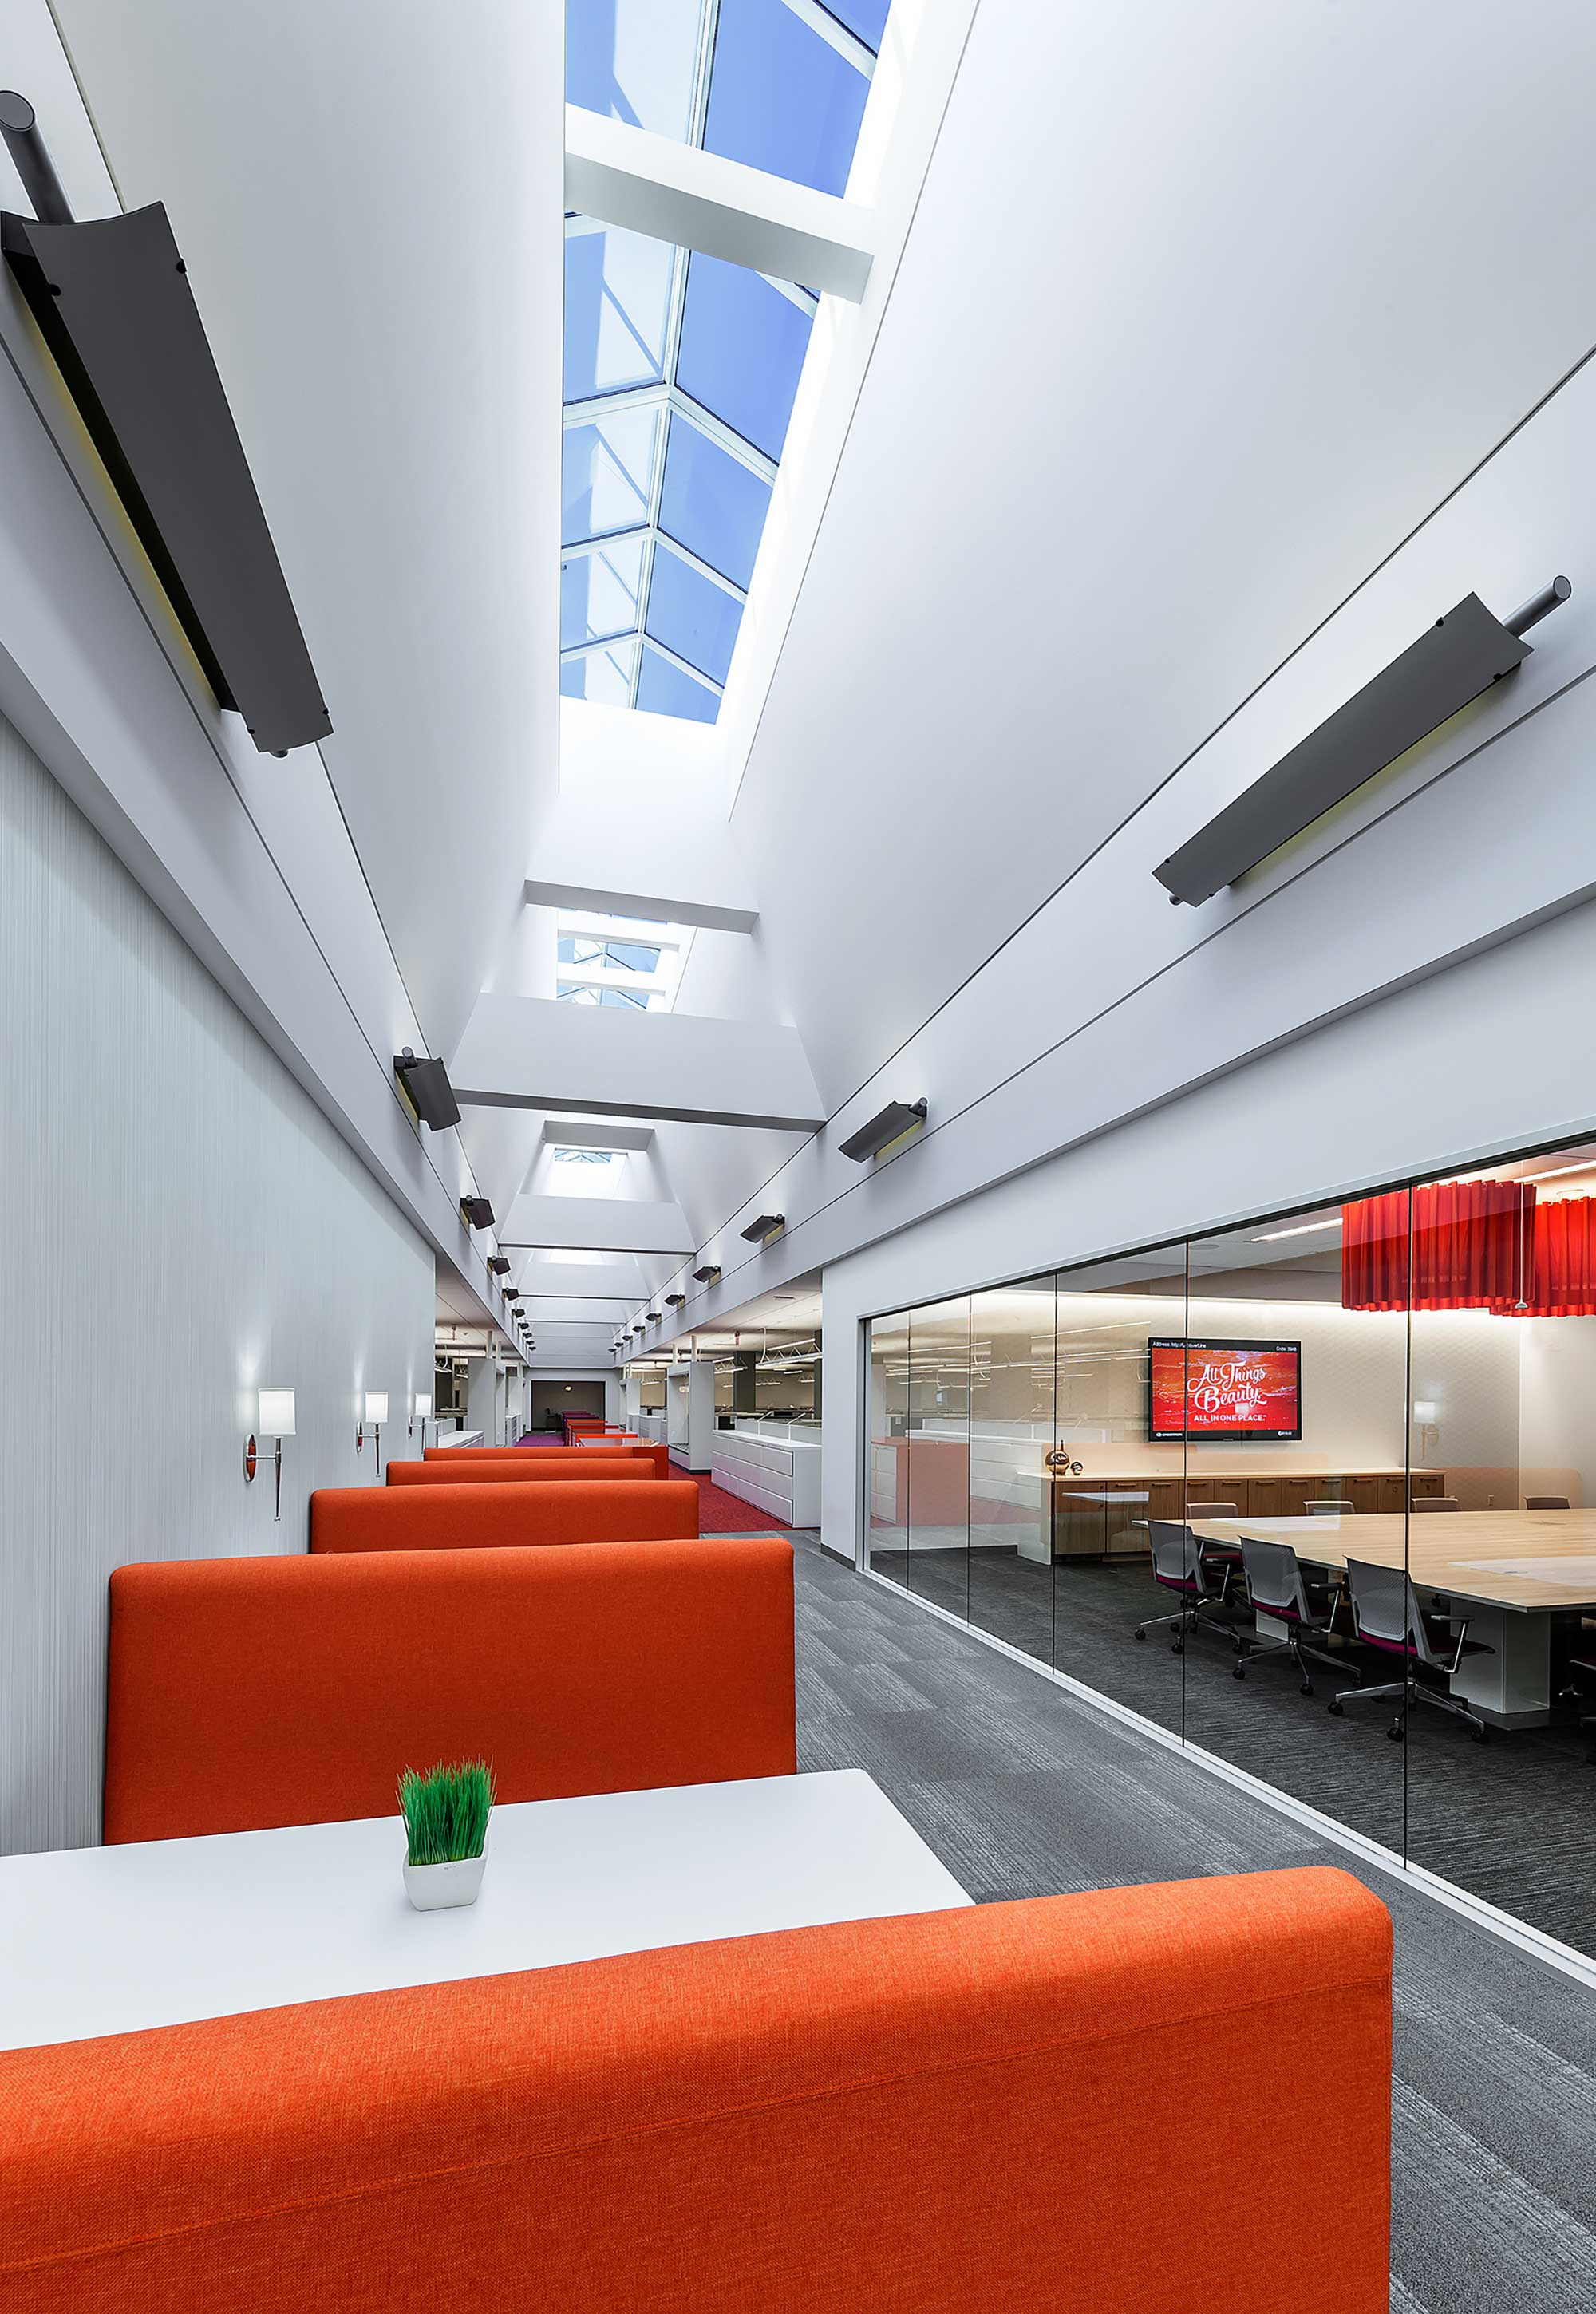 Open work space with cubicle seating